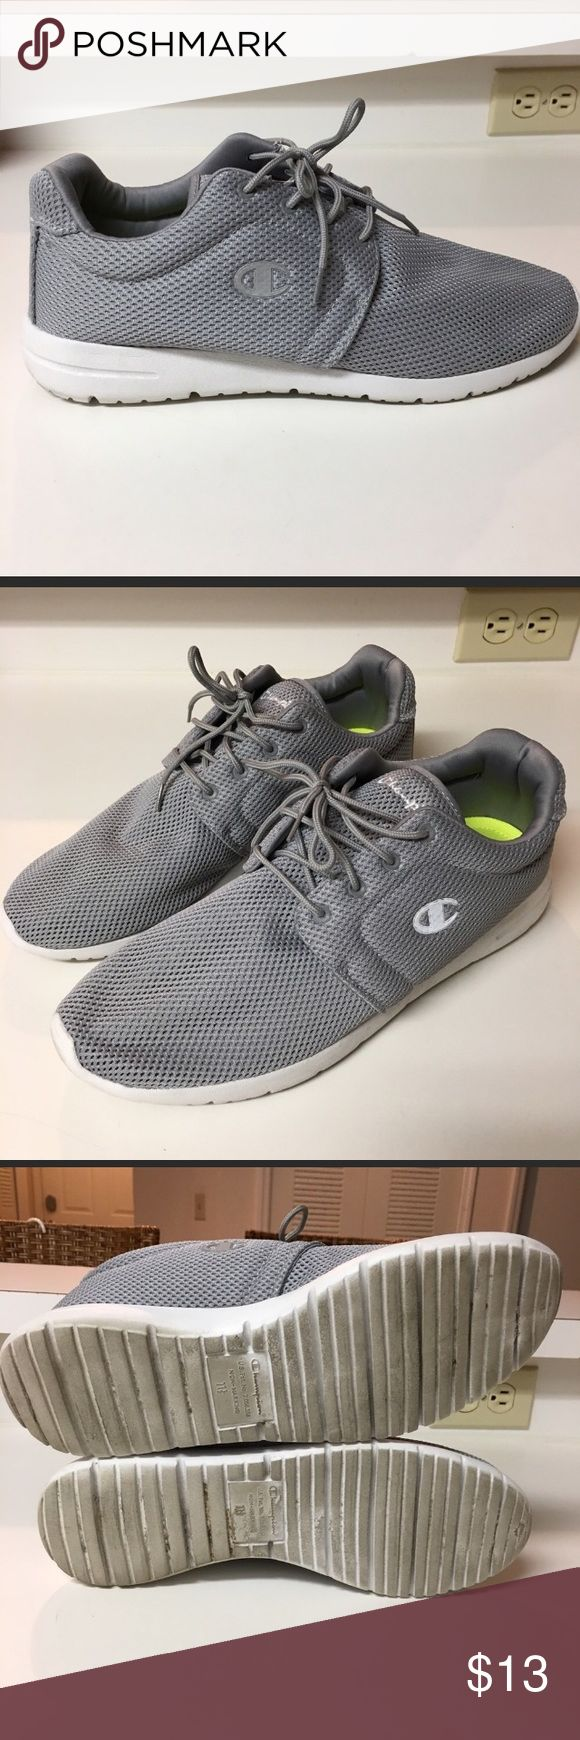 Men's Champion shoes: memory foam, light weight. Men's Champion shoes with memory foam insoles, very light weight and comfortable. Size 11.5. Slightly too big for me, gently used just a few times. Champion Shoes Athletic Shoes